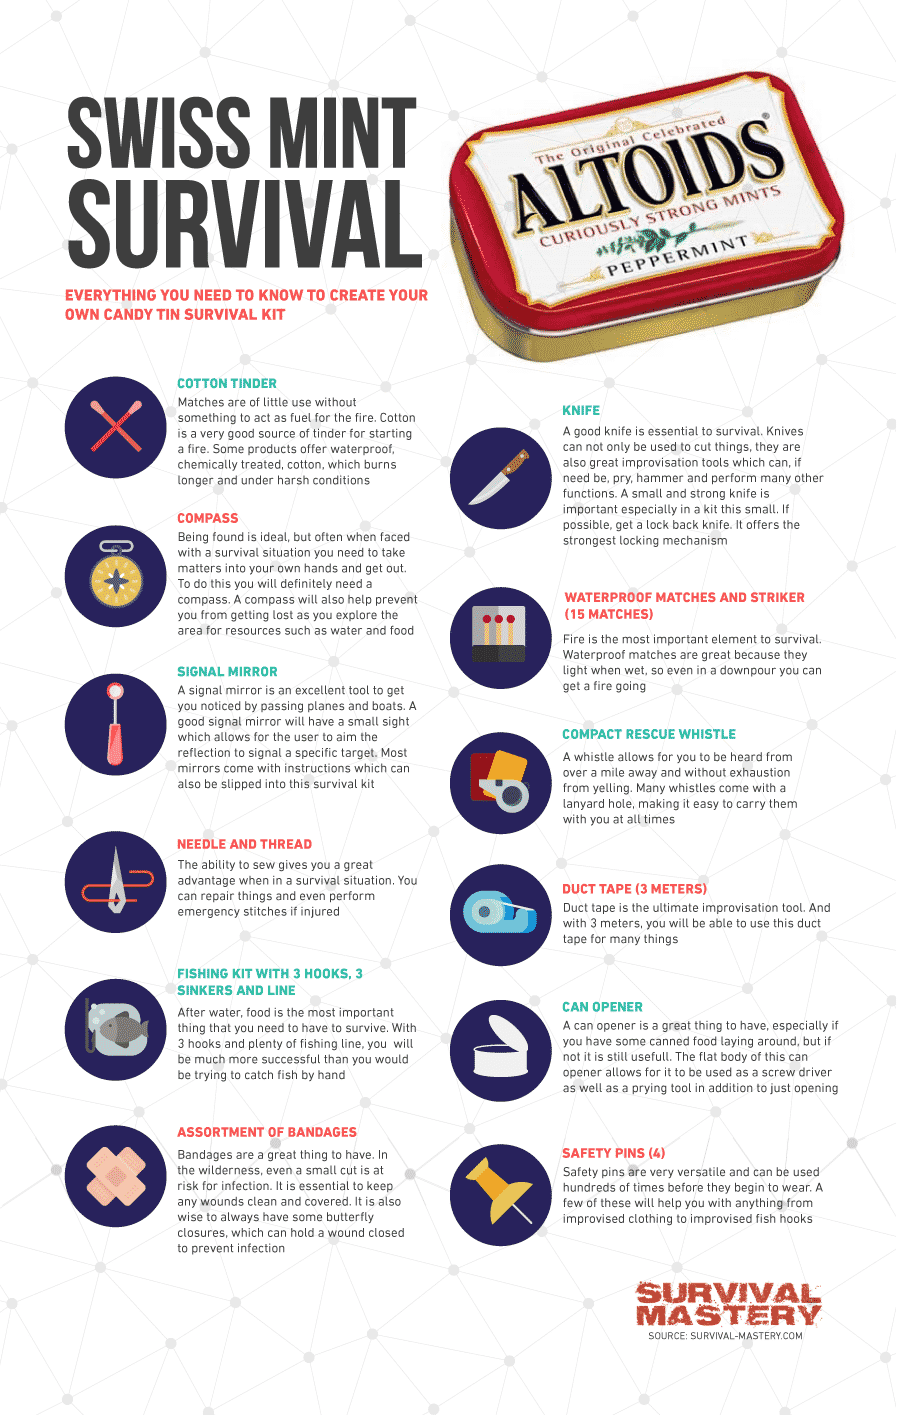 Swiss mint survival infographic